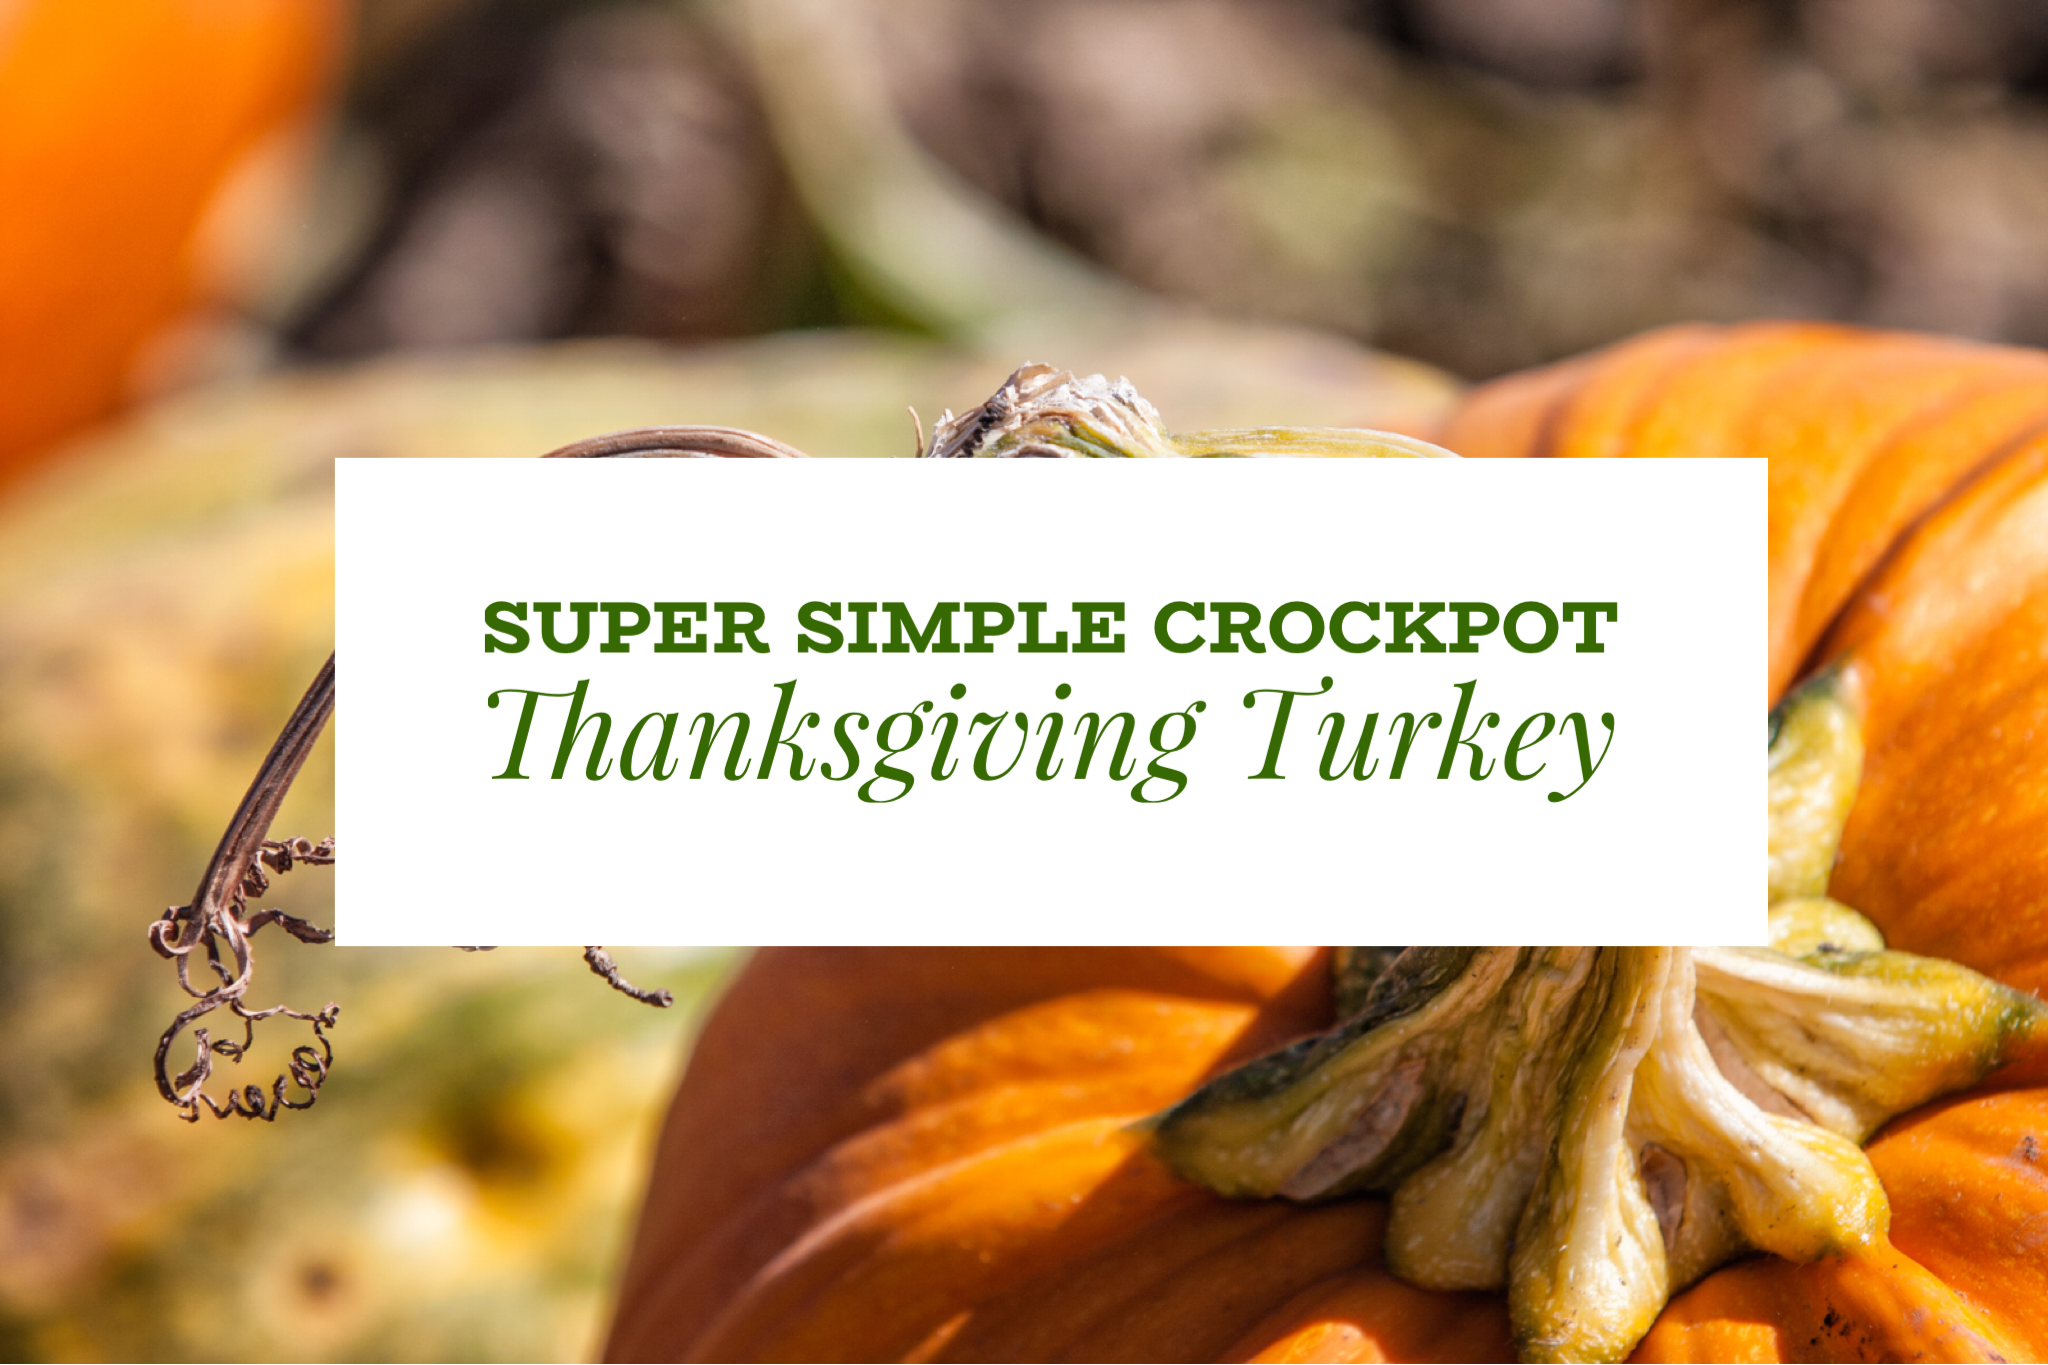 Super Simple Crockpot Thanksgiving Turkey